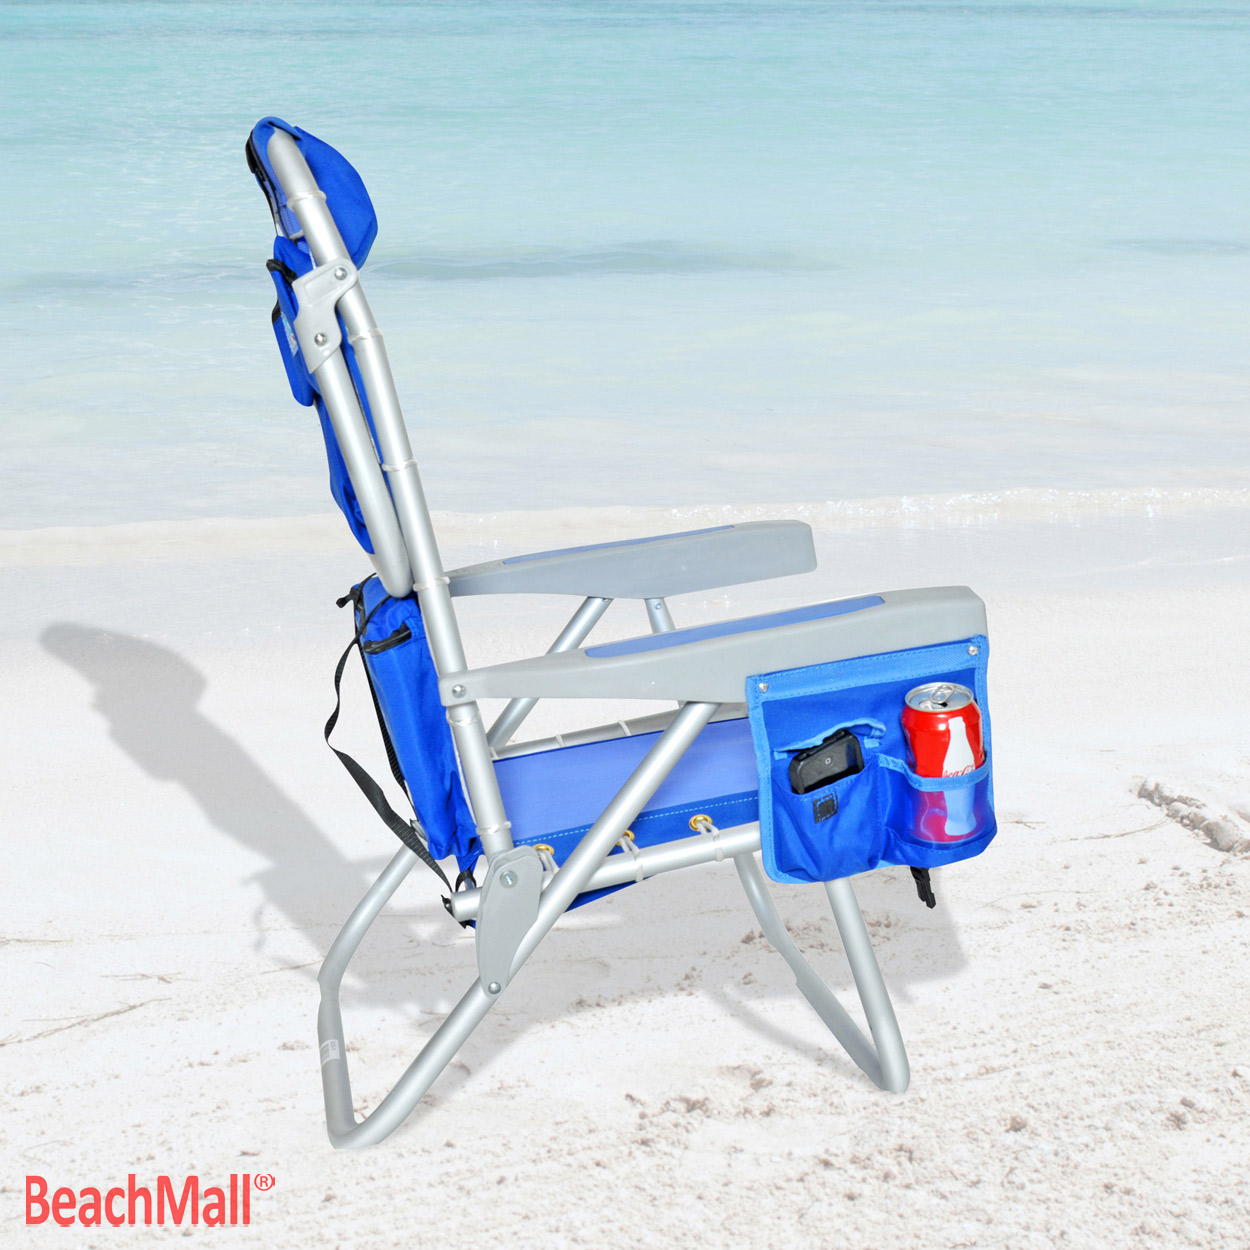 Backpack Beach Chair With Cooler Rio 5 Pos Layflat Ultimate Backpack Beach Chair W Cooler